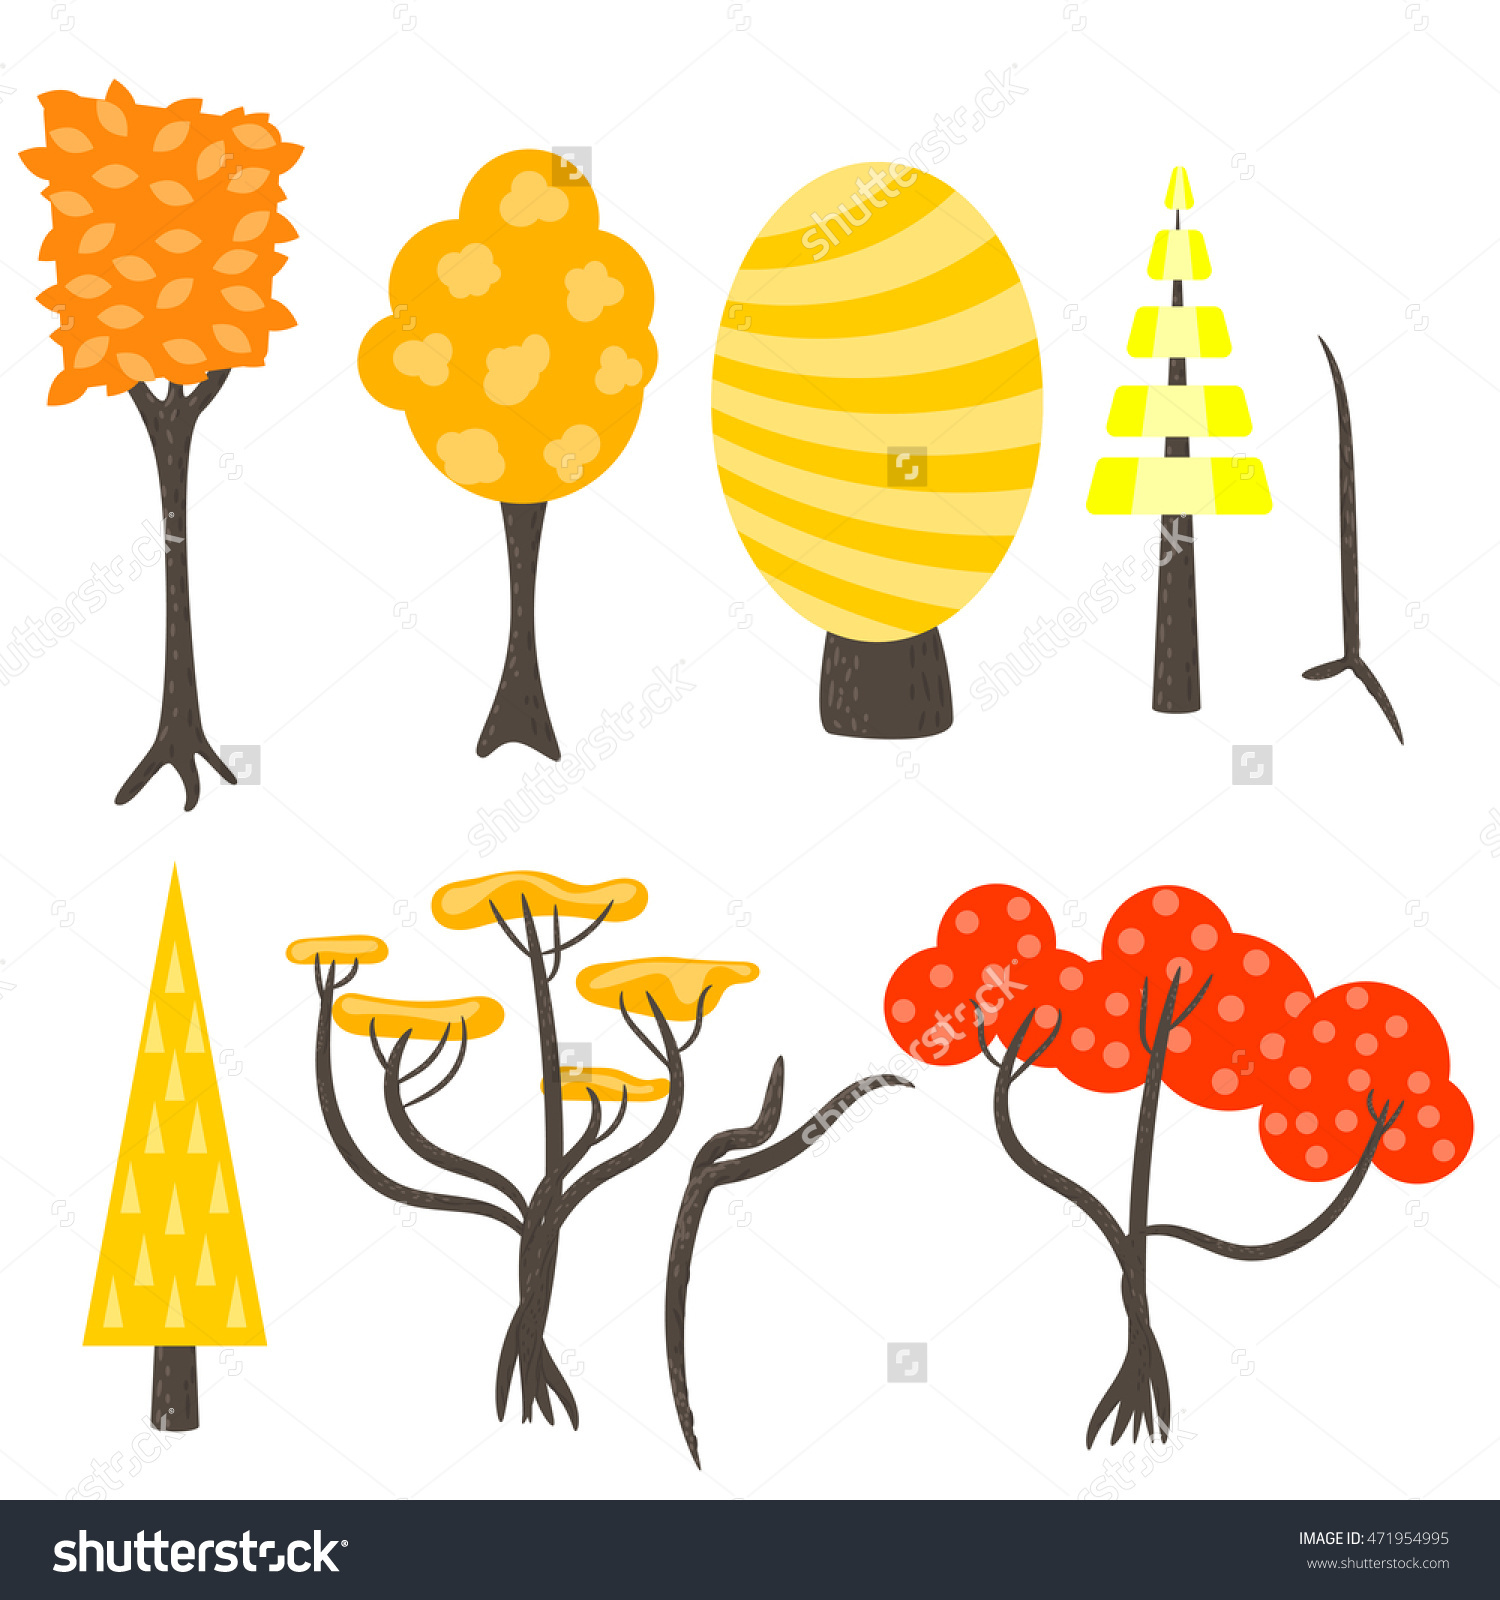 Vector Tree Clip Art Nature Set Stock Vector 471954995.